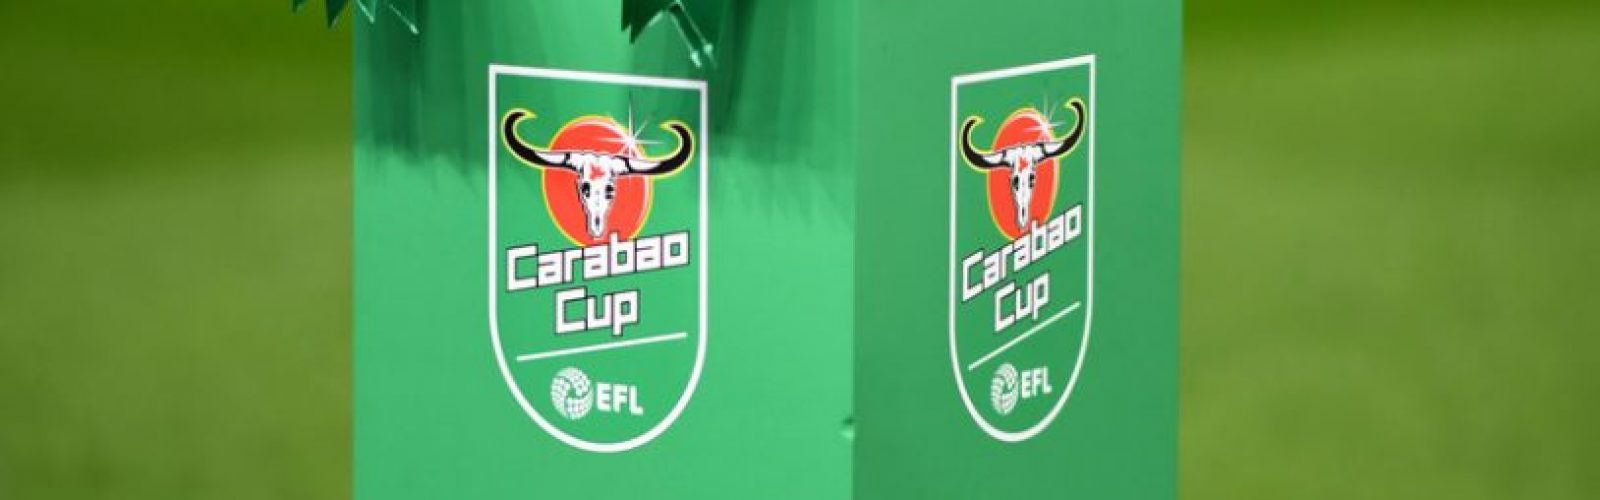 Carabao Cup Final Programme Offer